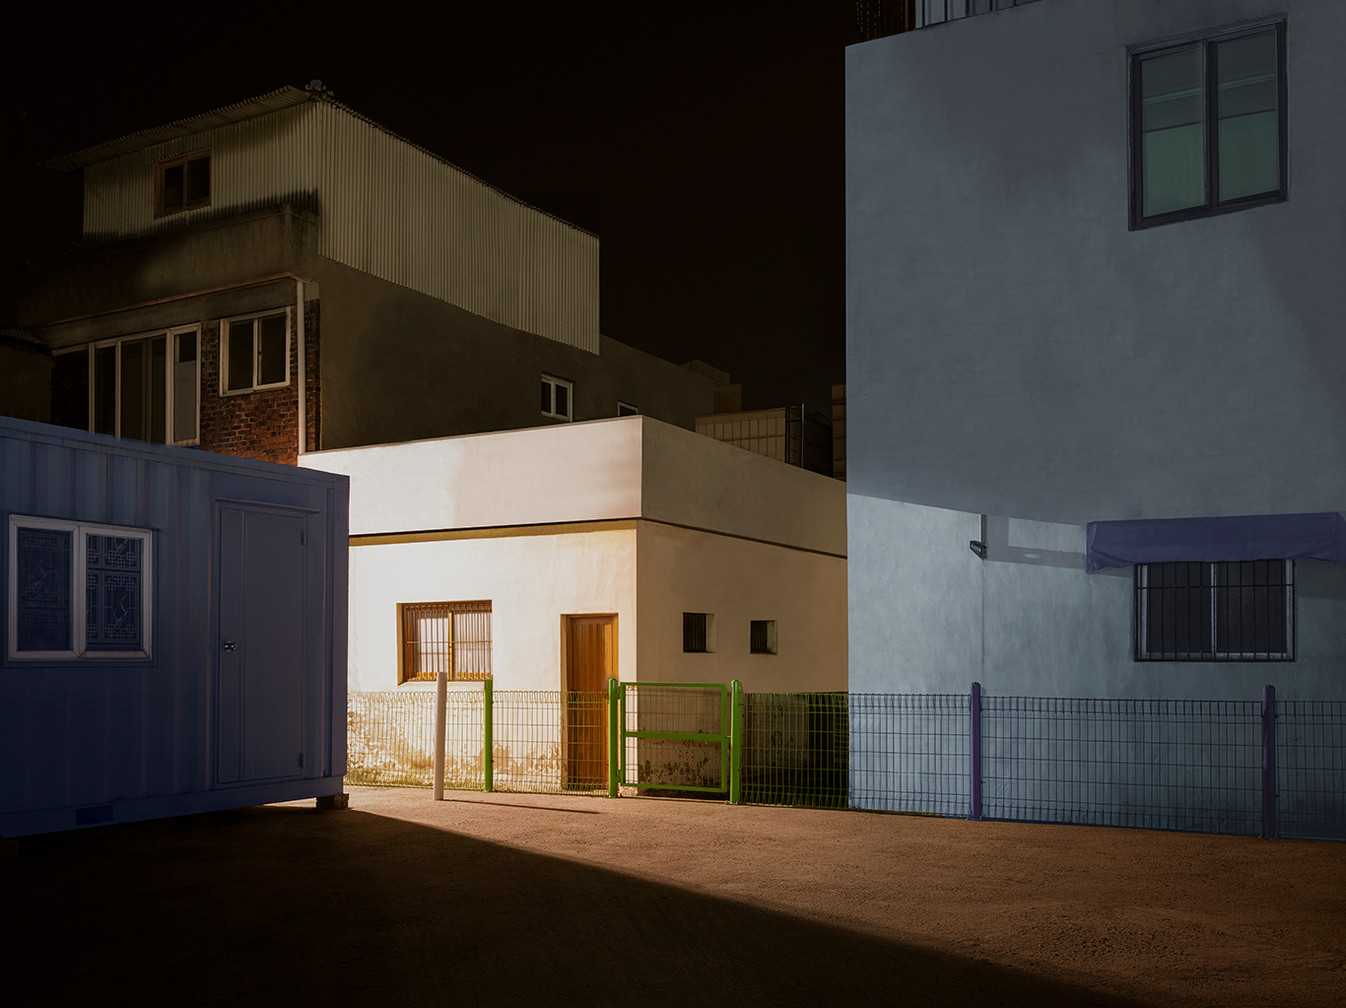 The Houses at Night #52